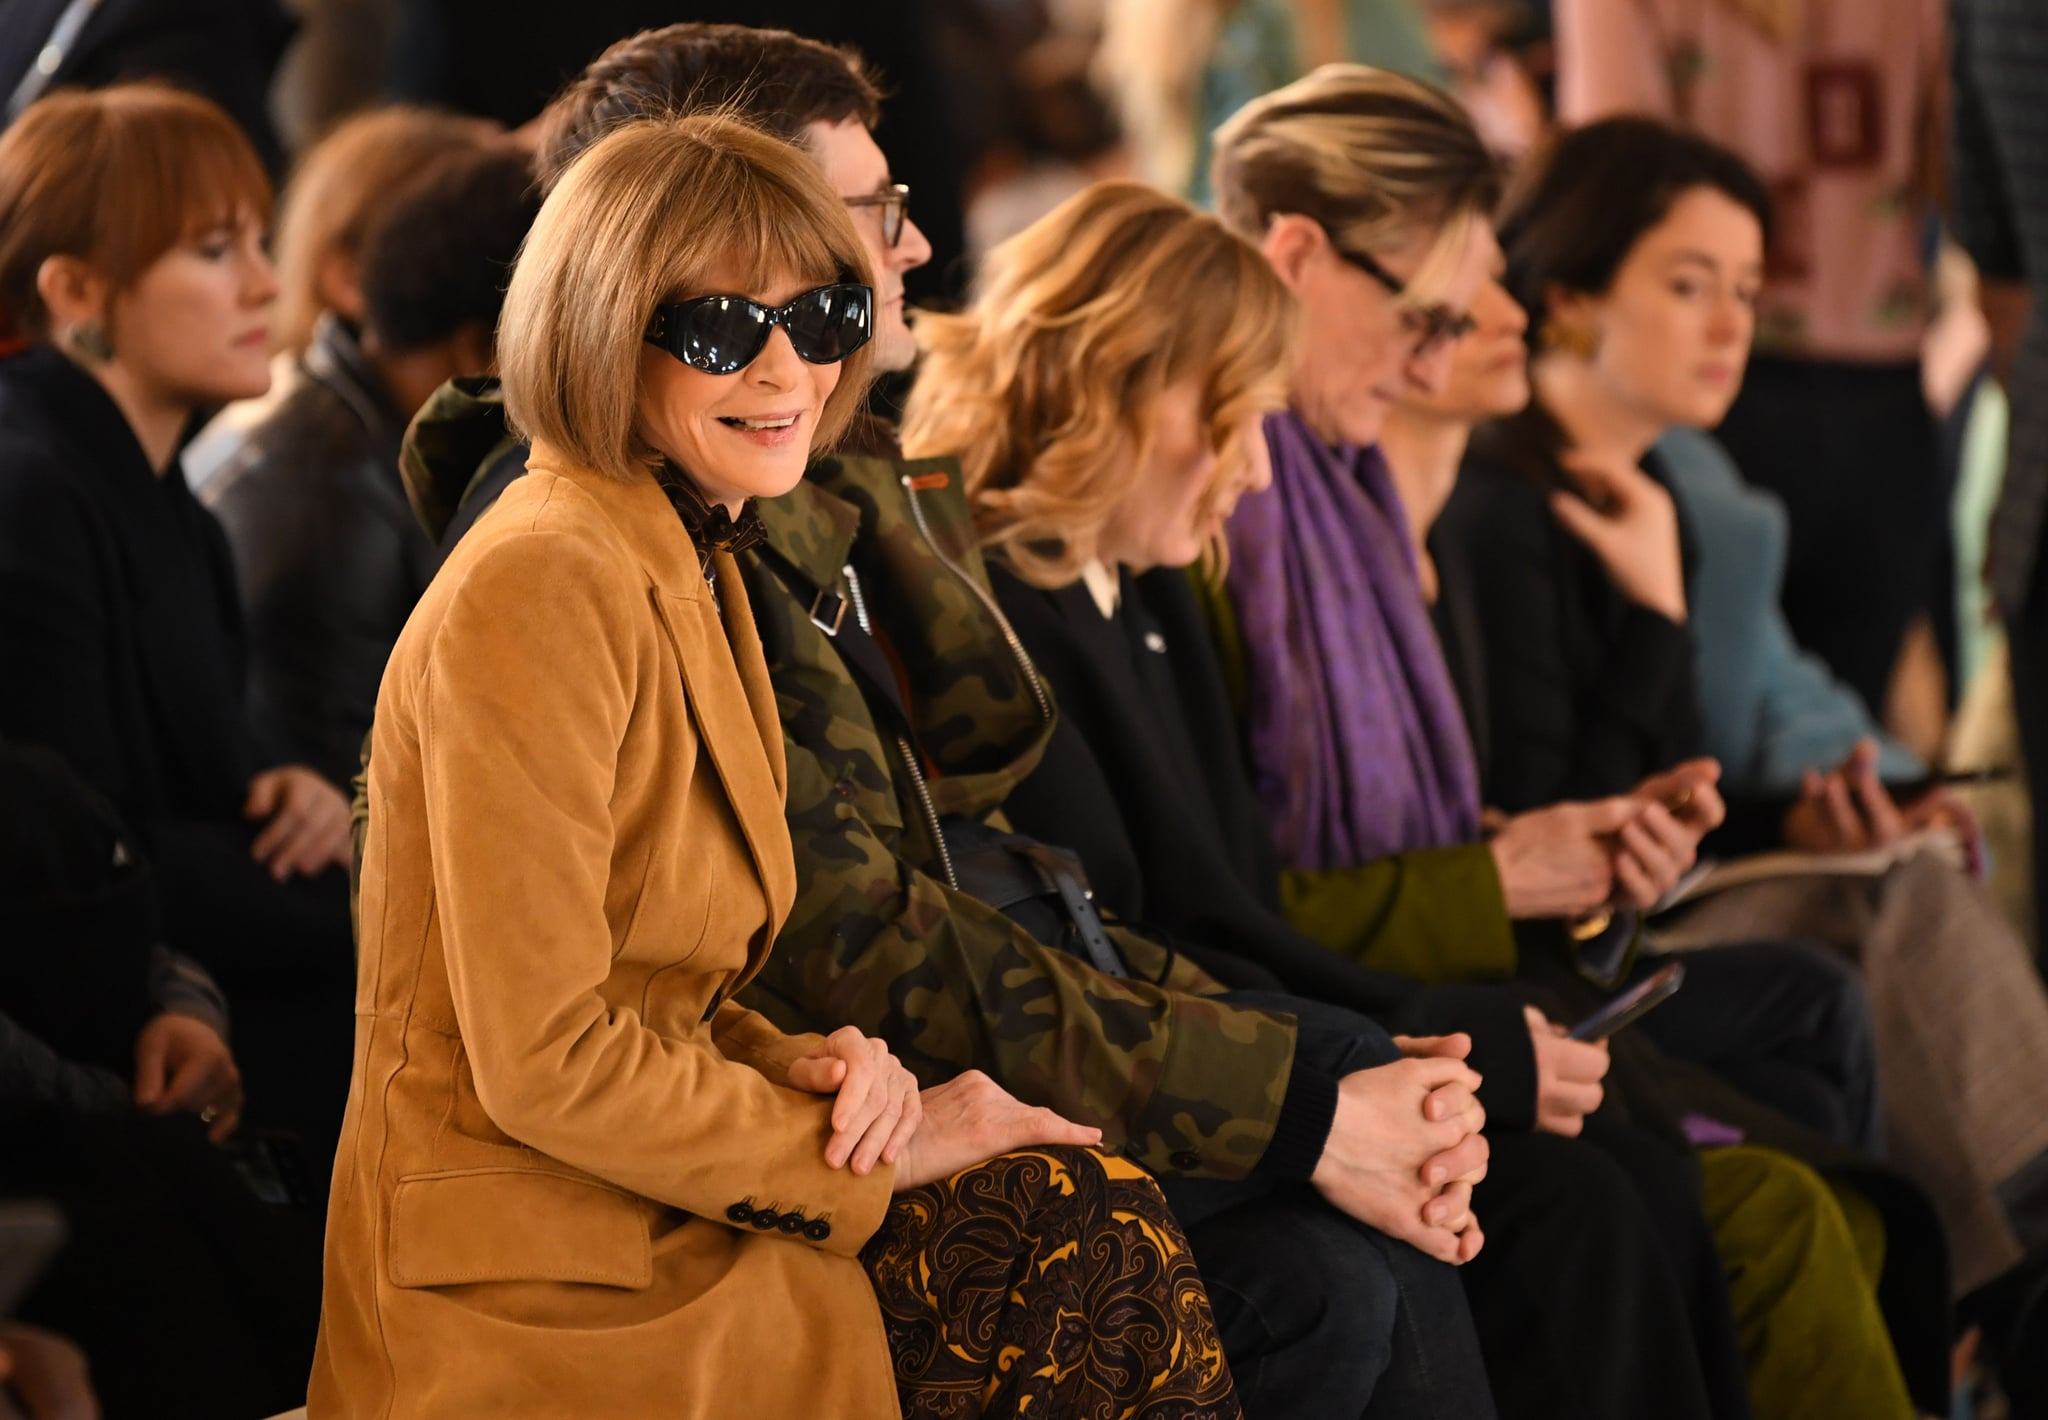 Vogue chief editor Anna Wintour takes her seat in the front row for the catwalk show by fashion house Victoria Beckham during their Autumn/Winter 2020 collection on the third day of London Fashion Week in London on February 16, 2020. (Photo by DANIEL LEAL-OLIVAS / AFP) (Photo by DANIEL LEAL-OLIVAS/AFP via Getty Images)